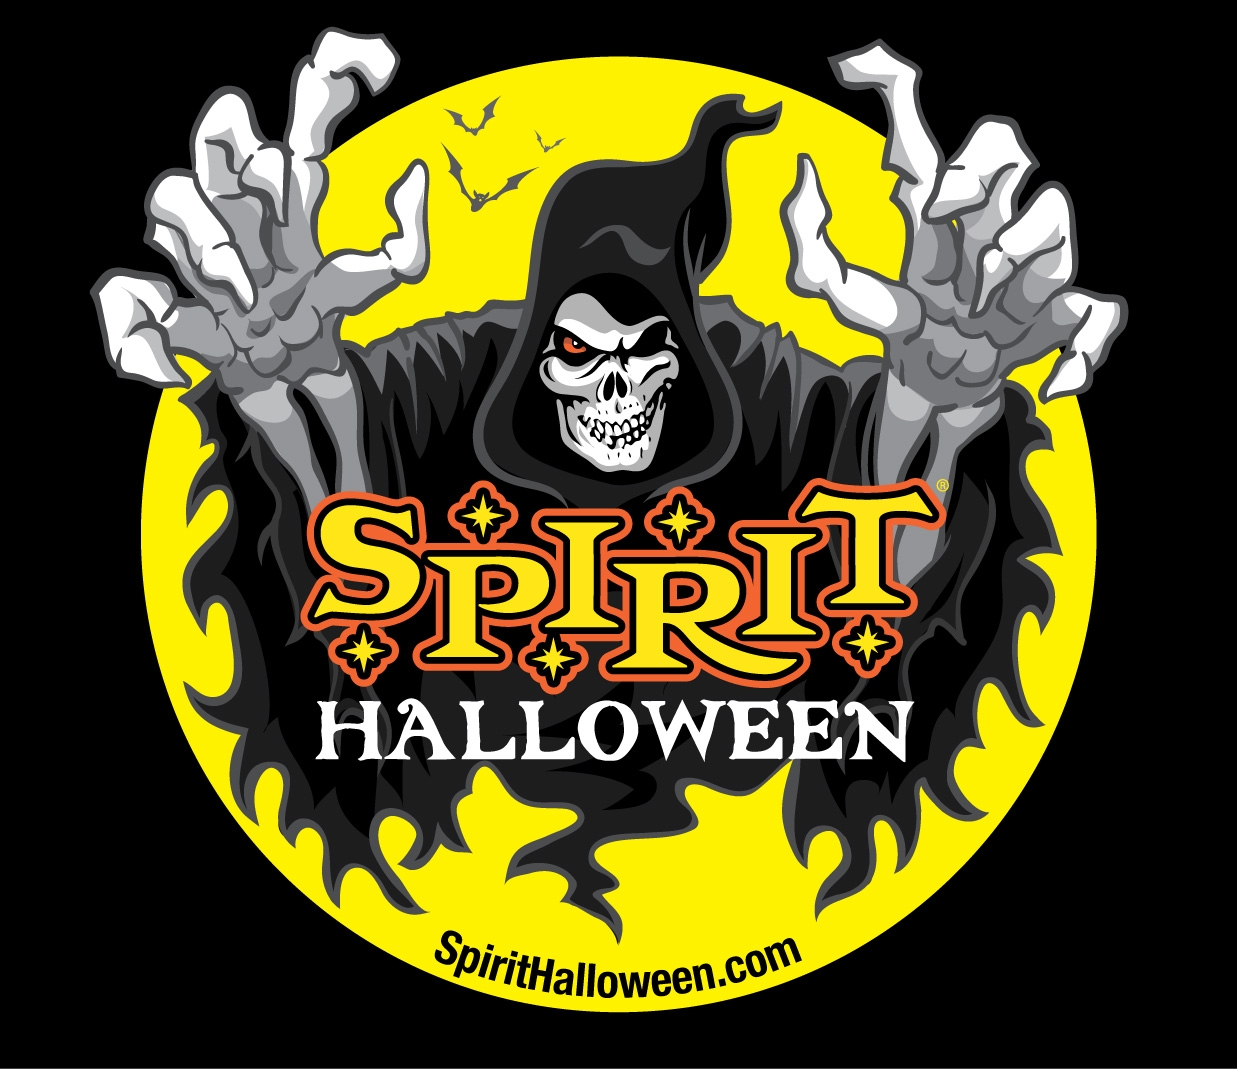 *HOT* 3 new Spirit Halloween Coupons available!